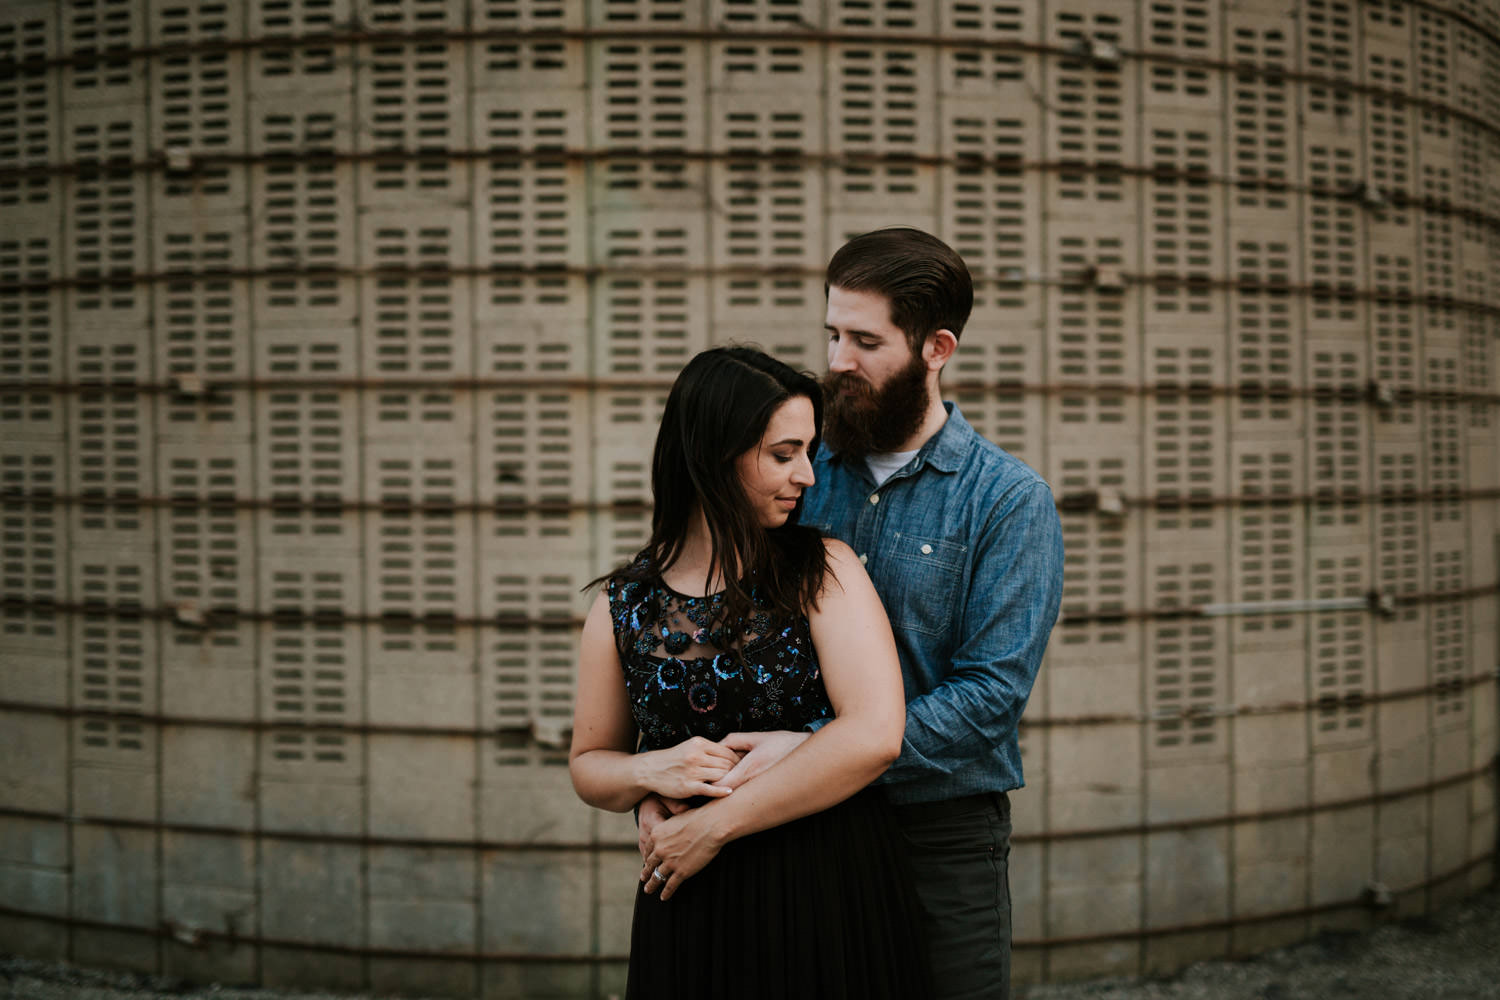 Outdoor engagement session photographed in Chicago